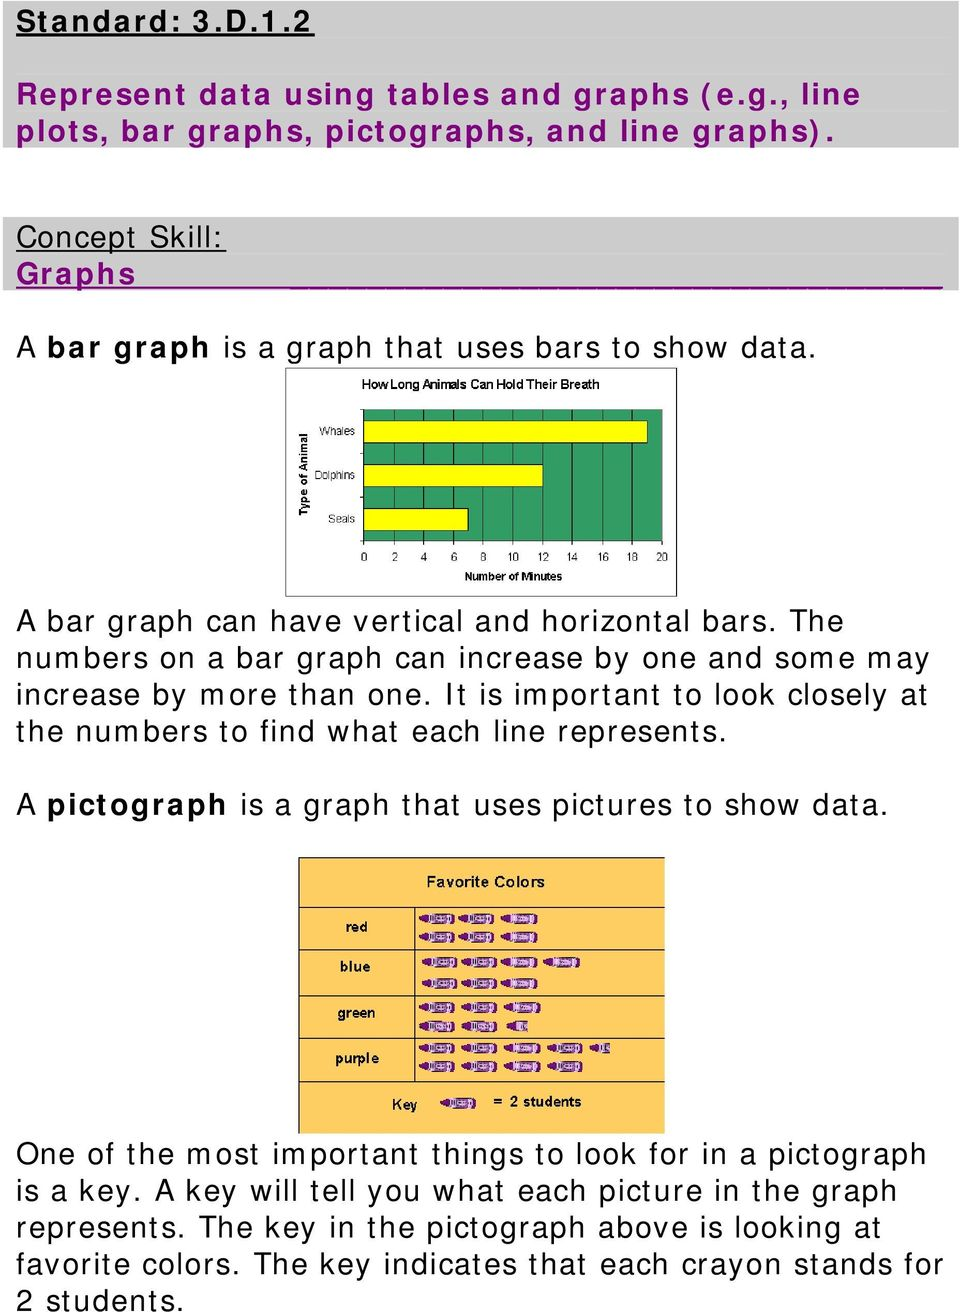 The numbers on a bar graph can increase by one and some may increase by more than one. It is important to look closely at the numbers to find what each line represents.